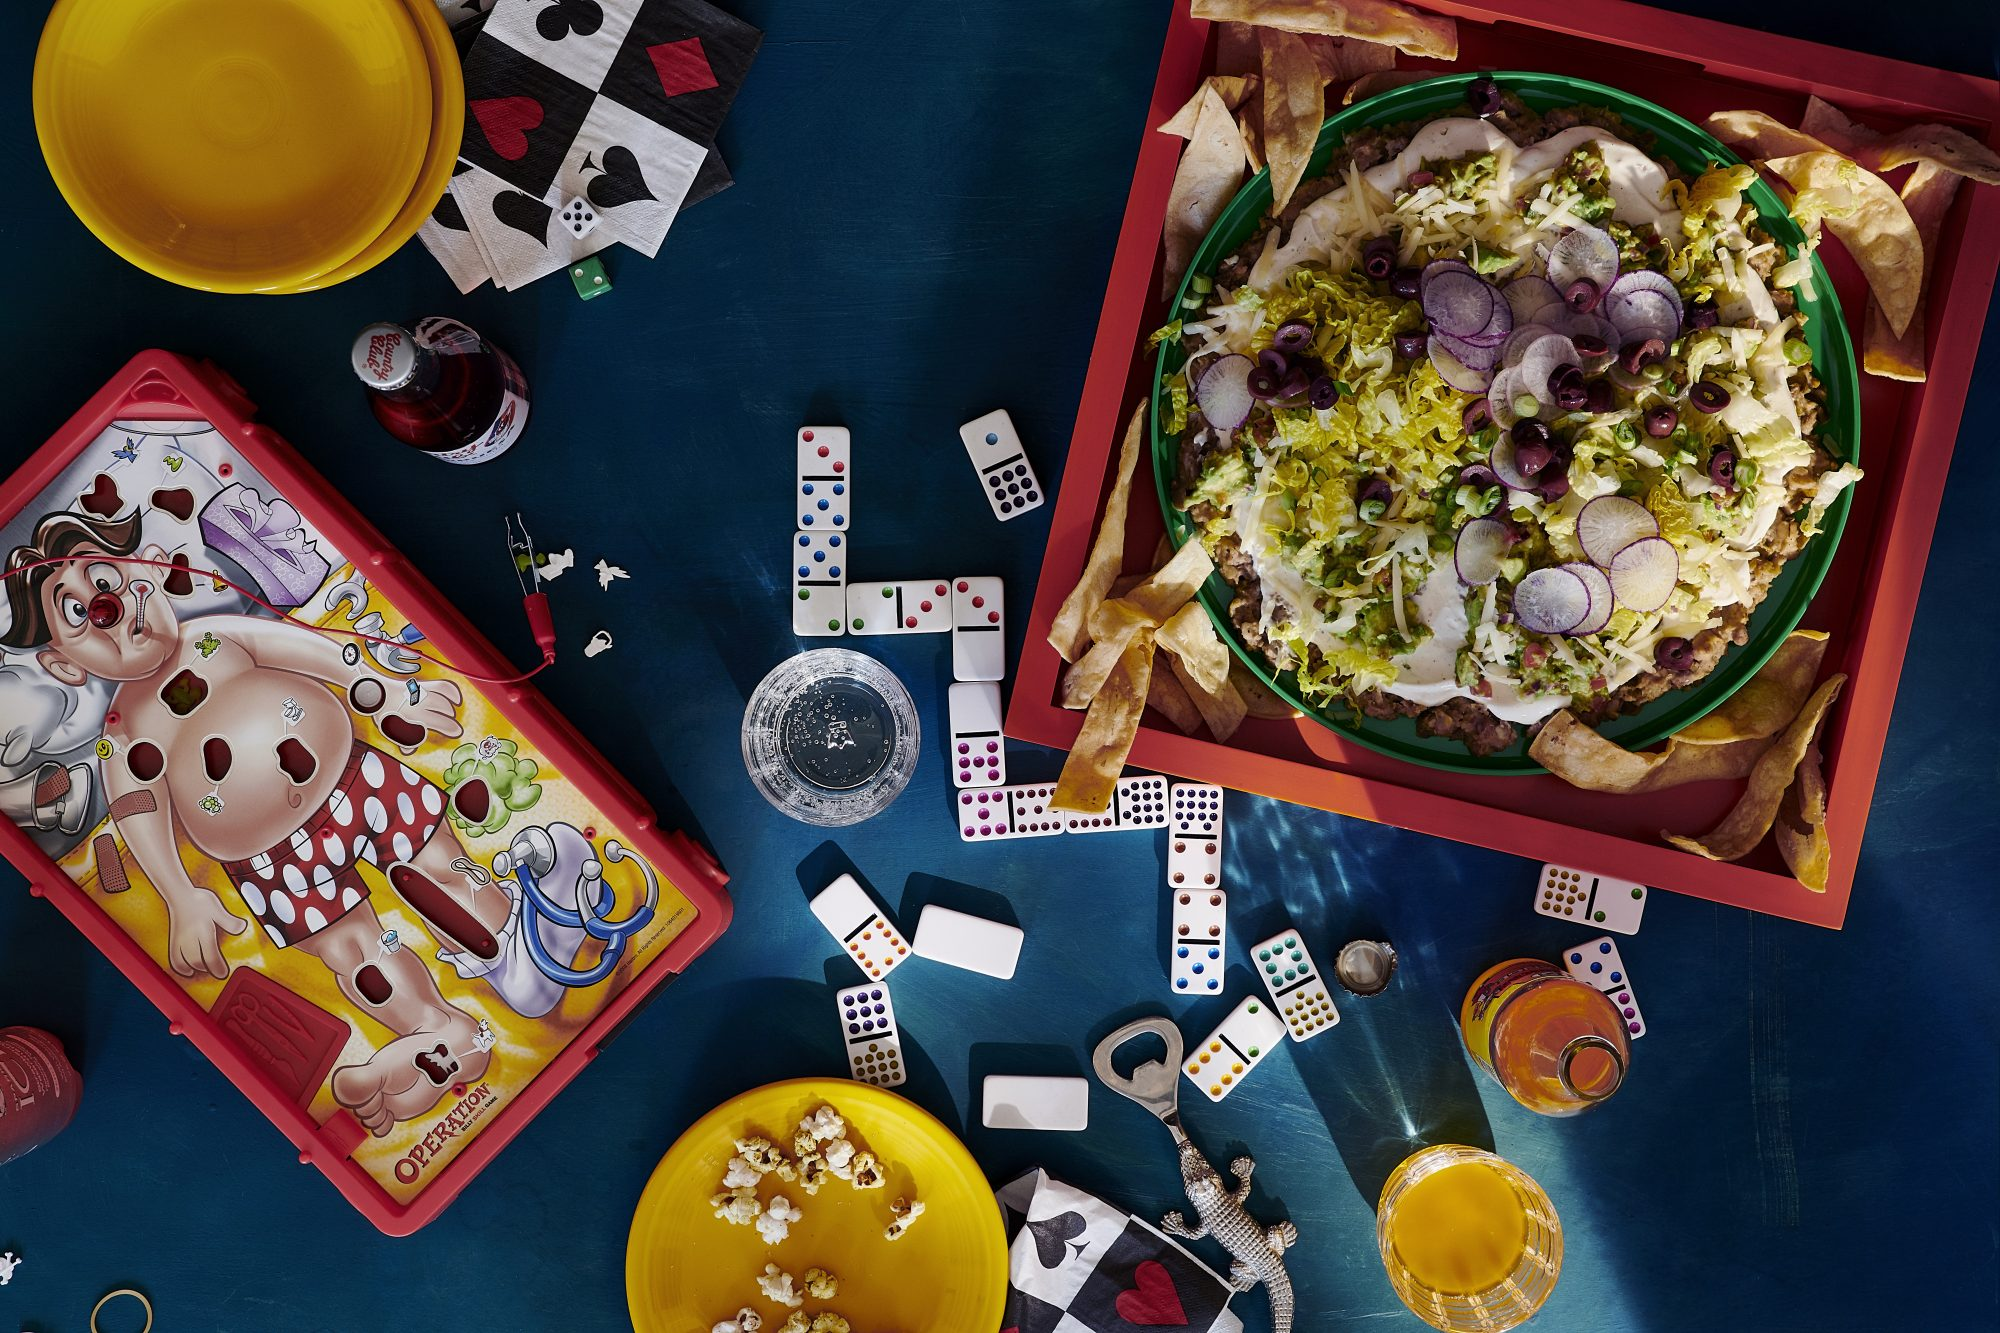 David Burtka's seven-layer dip recipe from his cookbook Life Is a Party